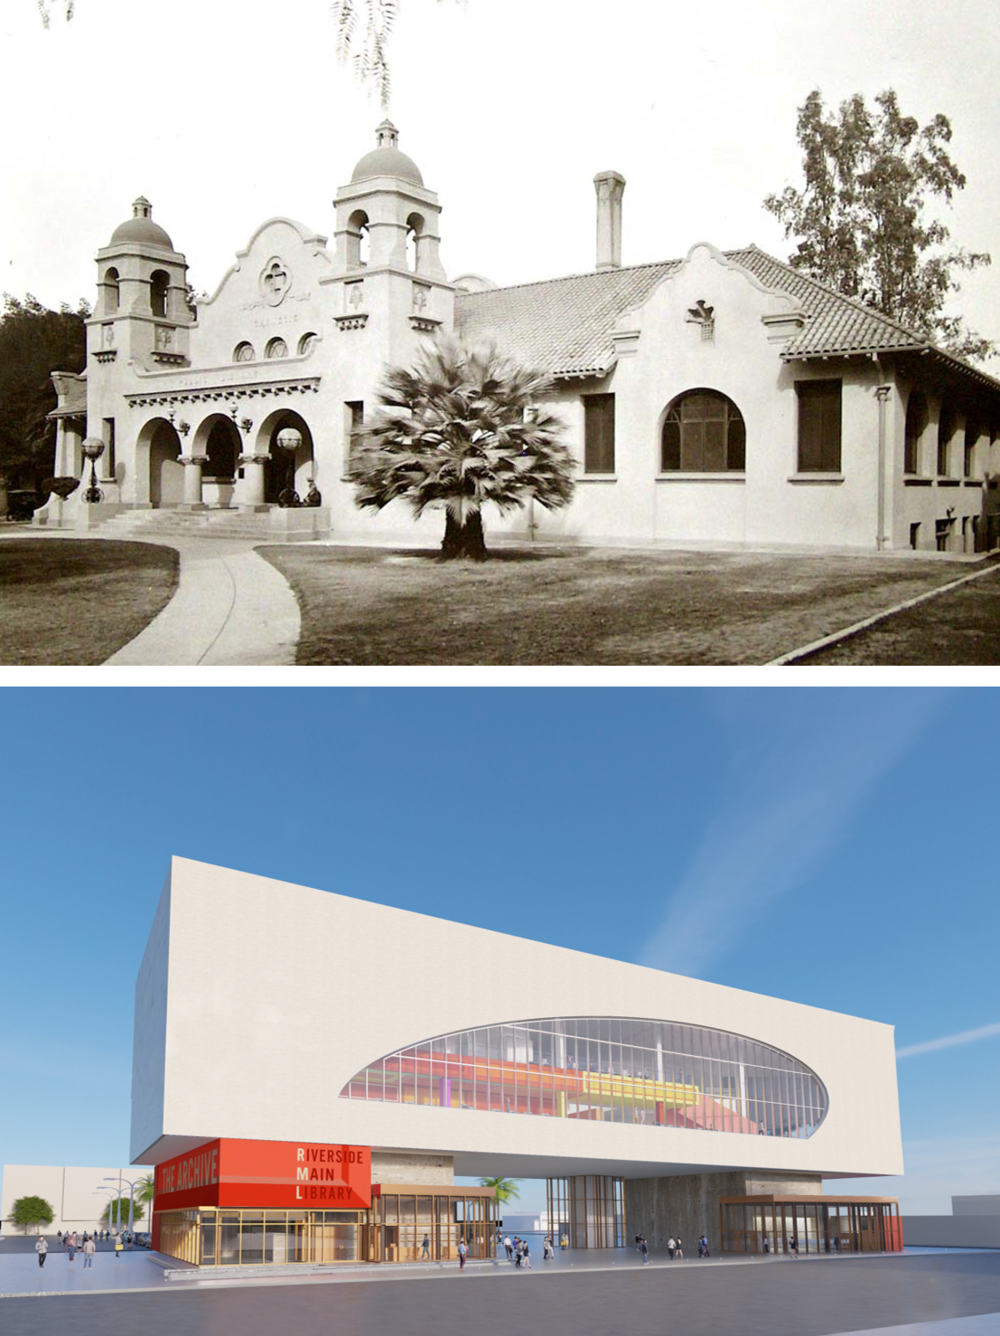 RIVERSIDE MAIN LIBRARY The city's original mission style Carnegie library (above) was built in 1903, torn down and replaced by a new library in 1964. The 1964 library will now be replaced on a different site downtown by a new library (below). The new library while much larger has more in common with the Carnegie library than the mid-century one.